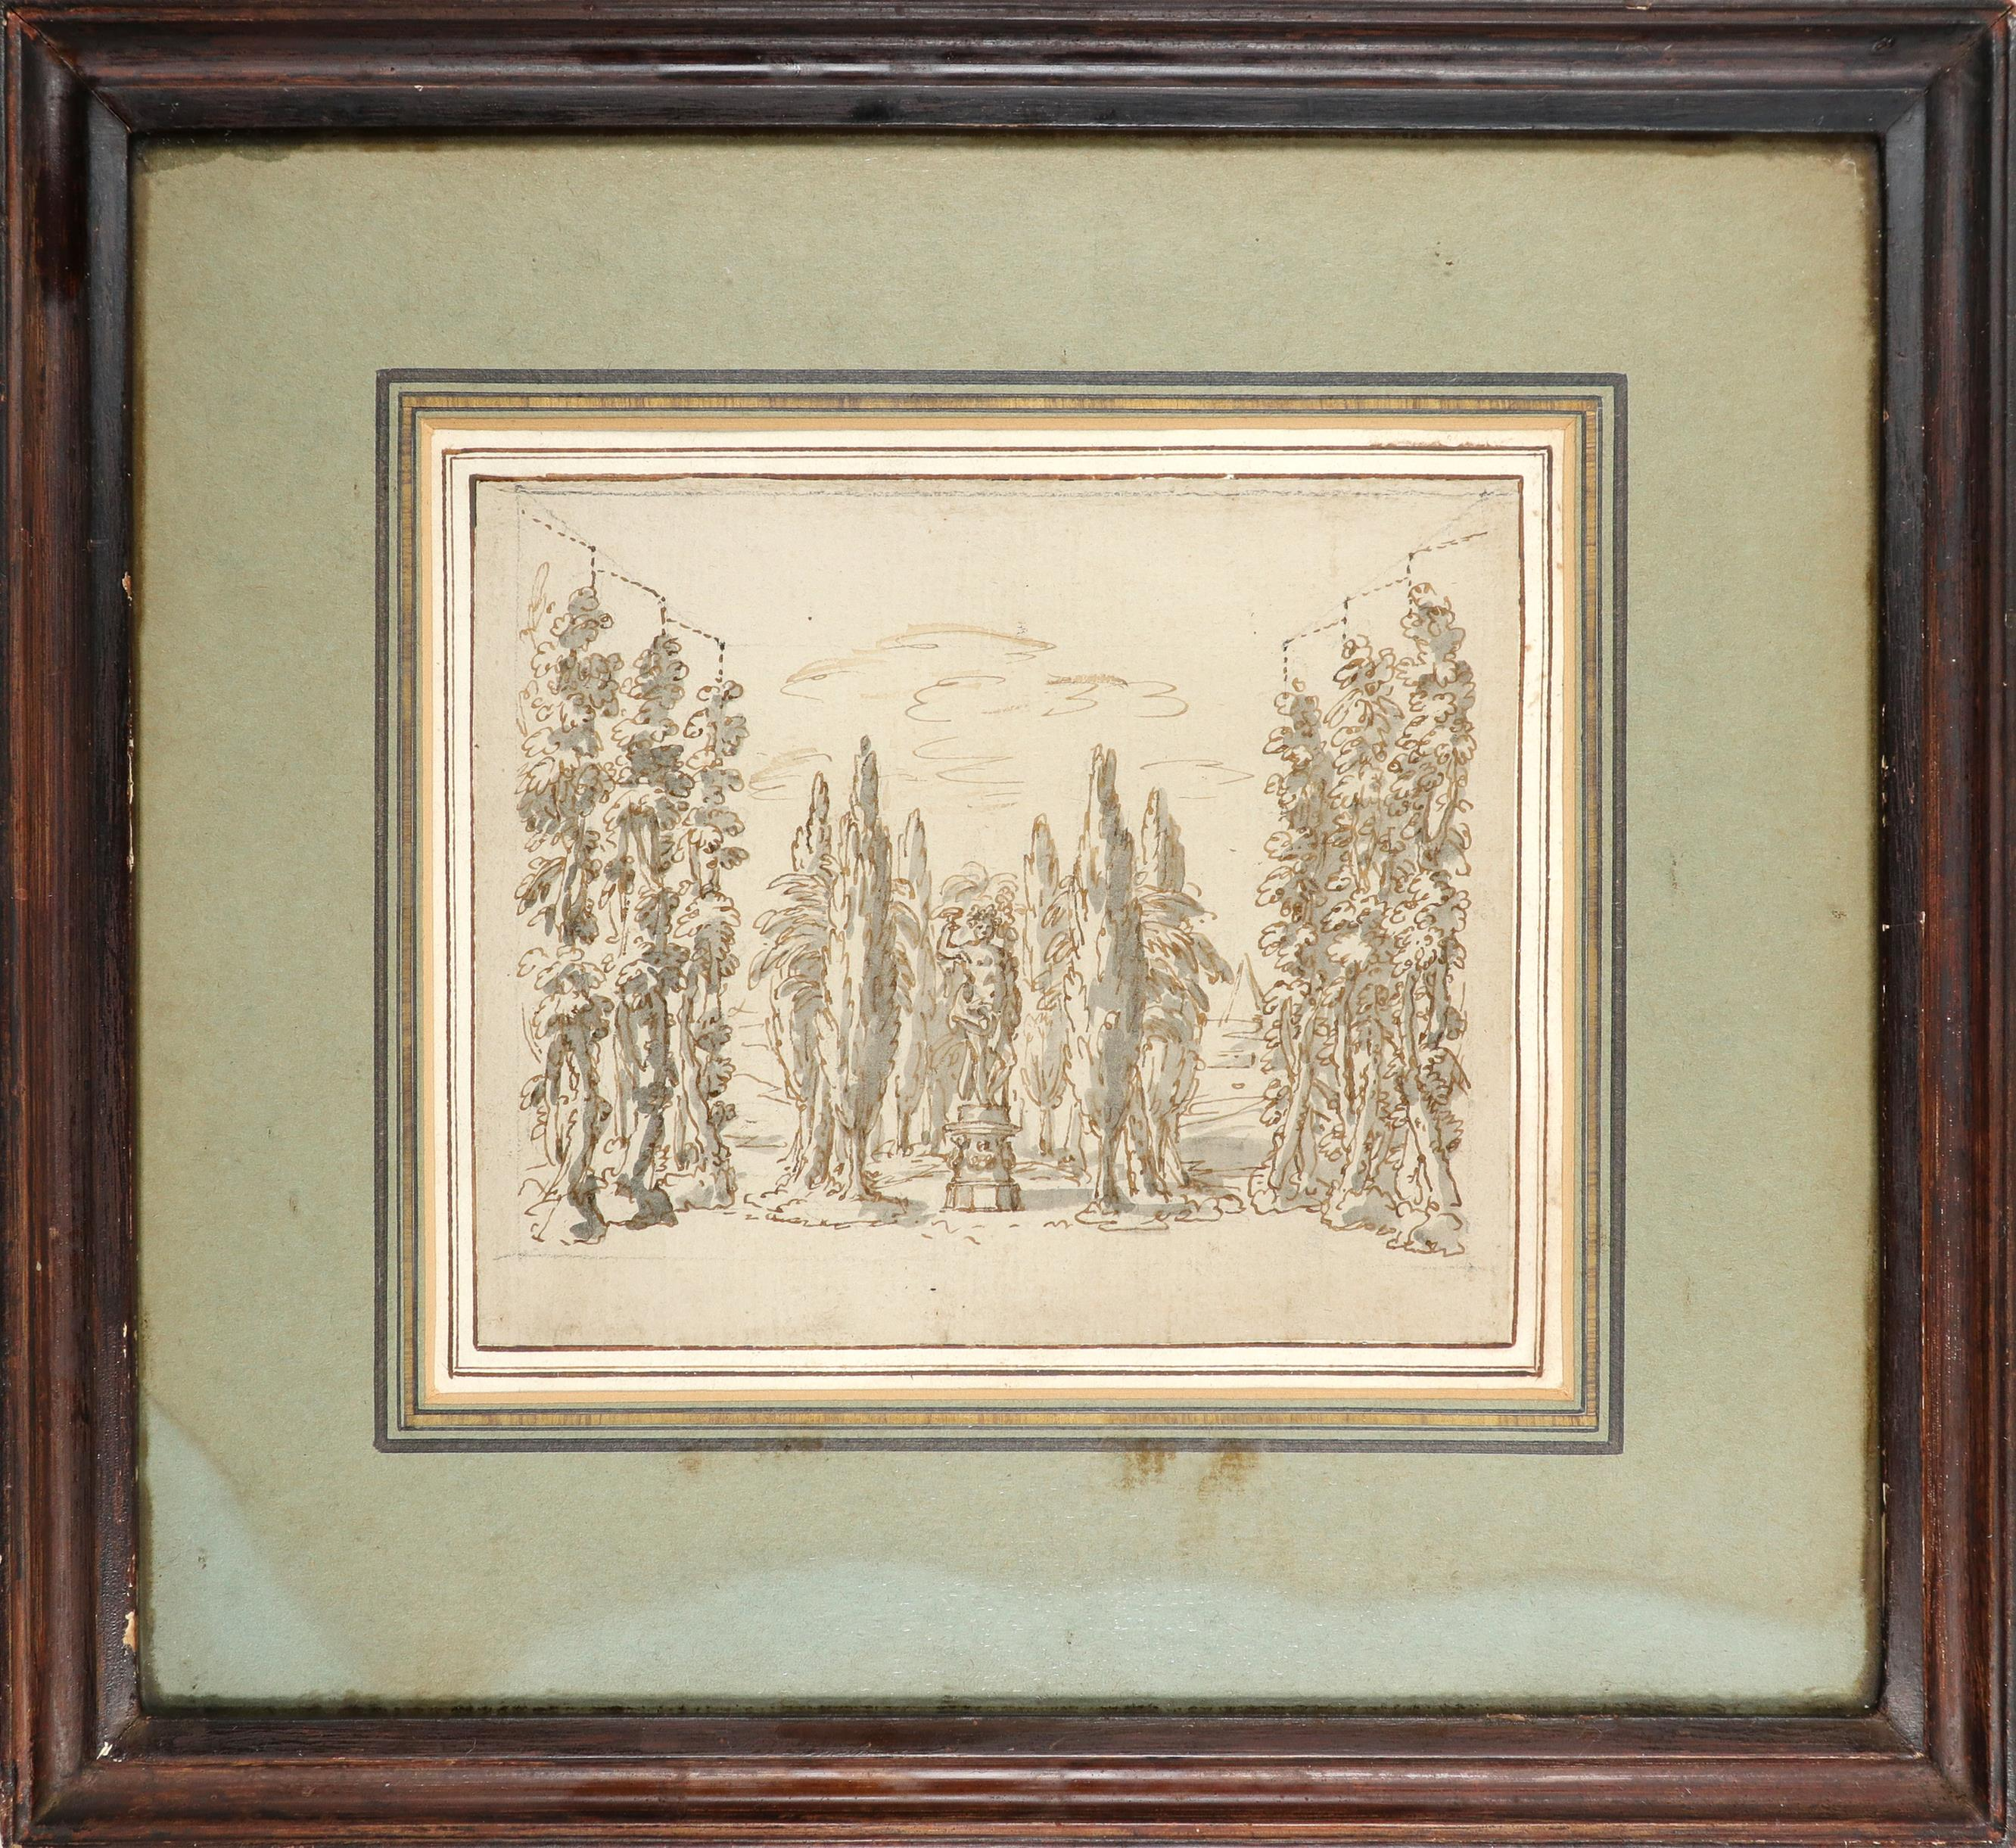 English School Early 18th Century Study of a statue of Bacchus amongst a grove of trees Pencil, - Image 2 of 3